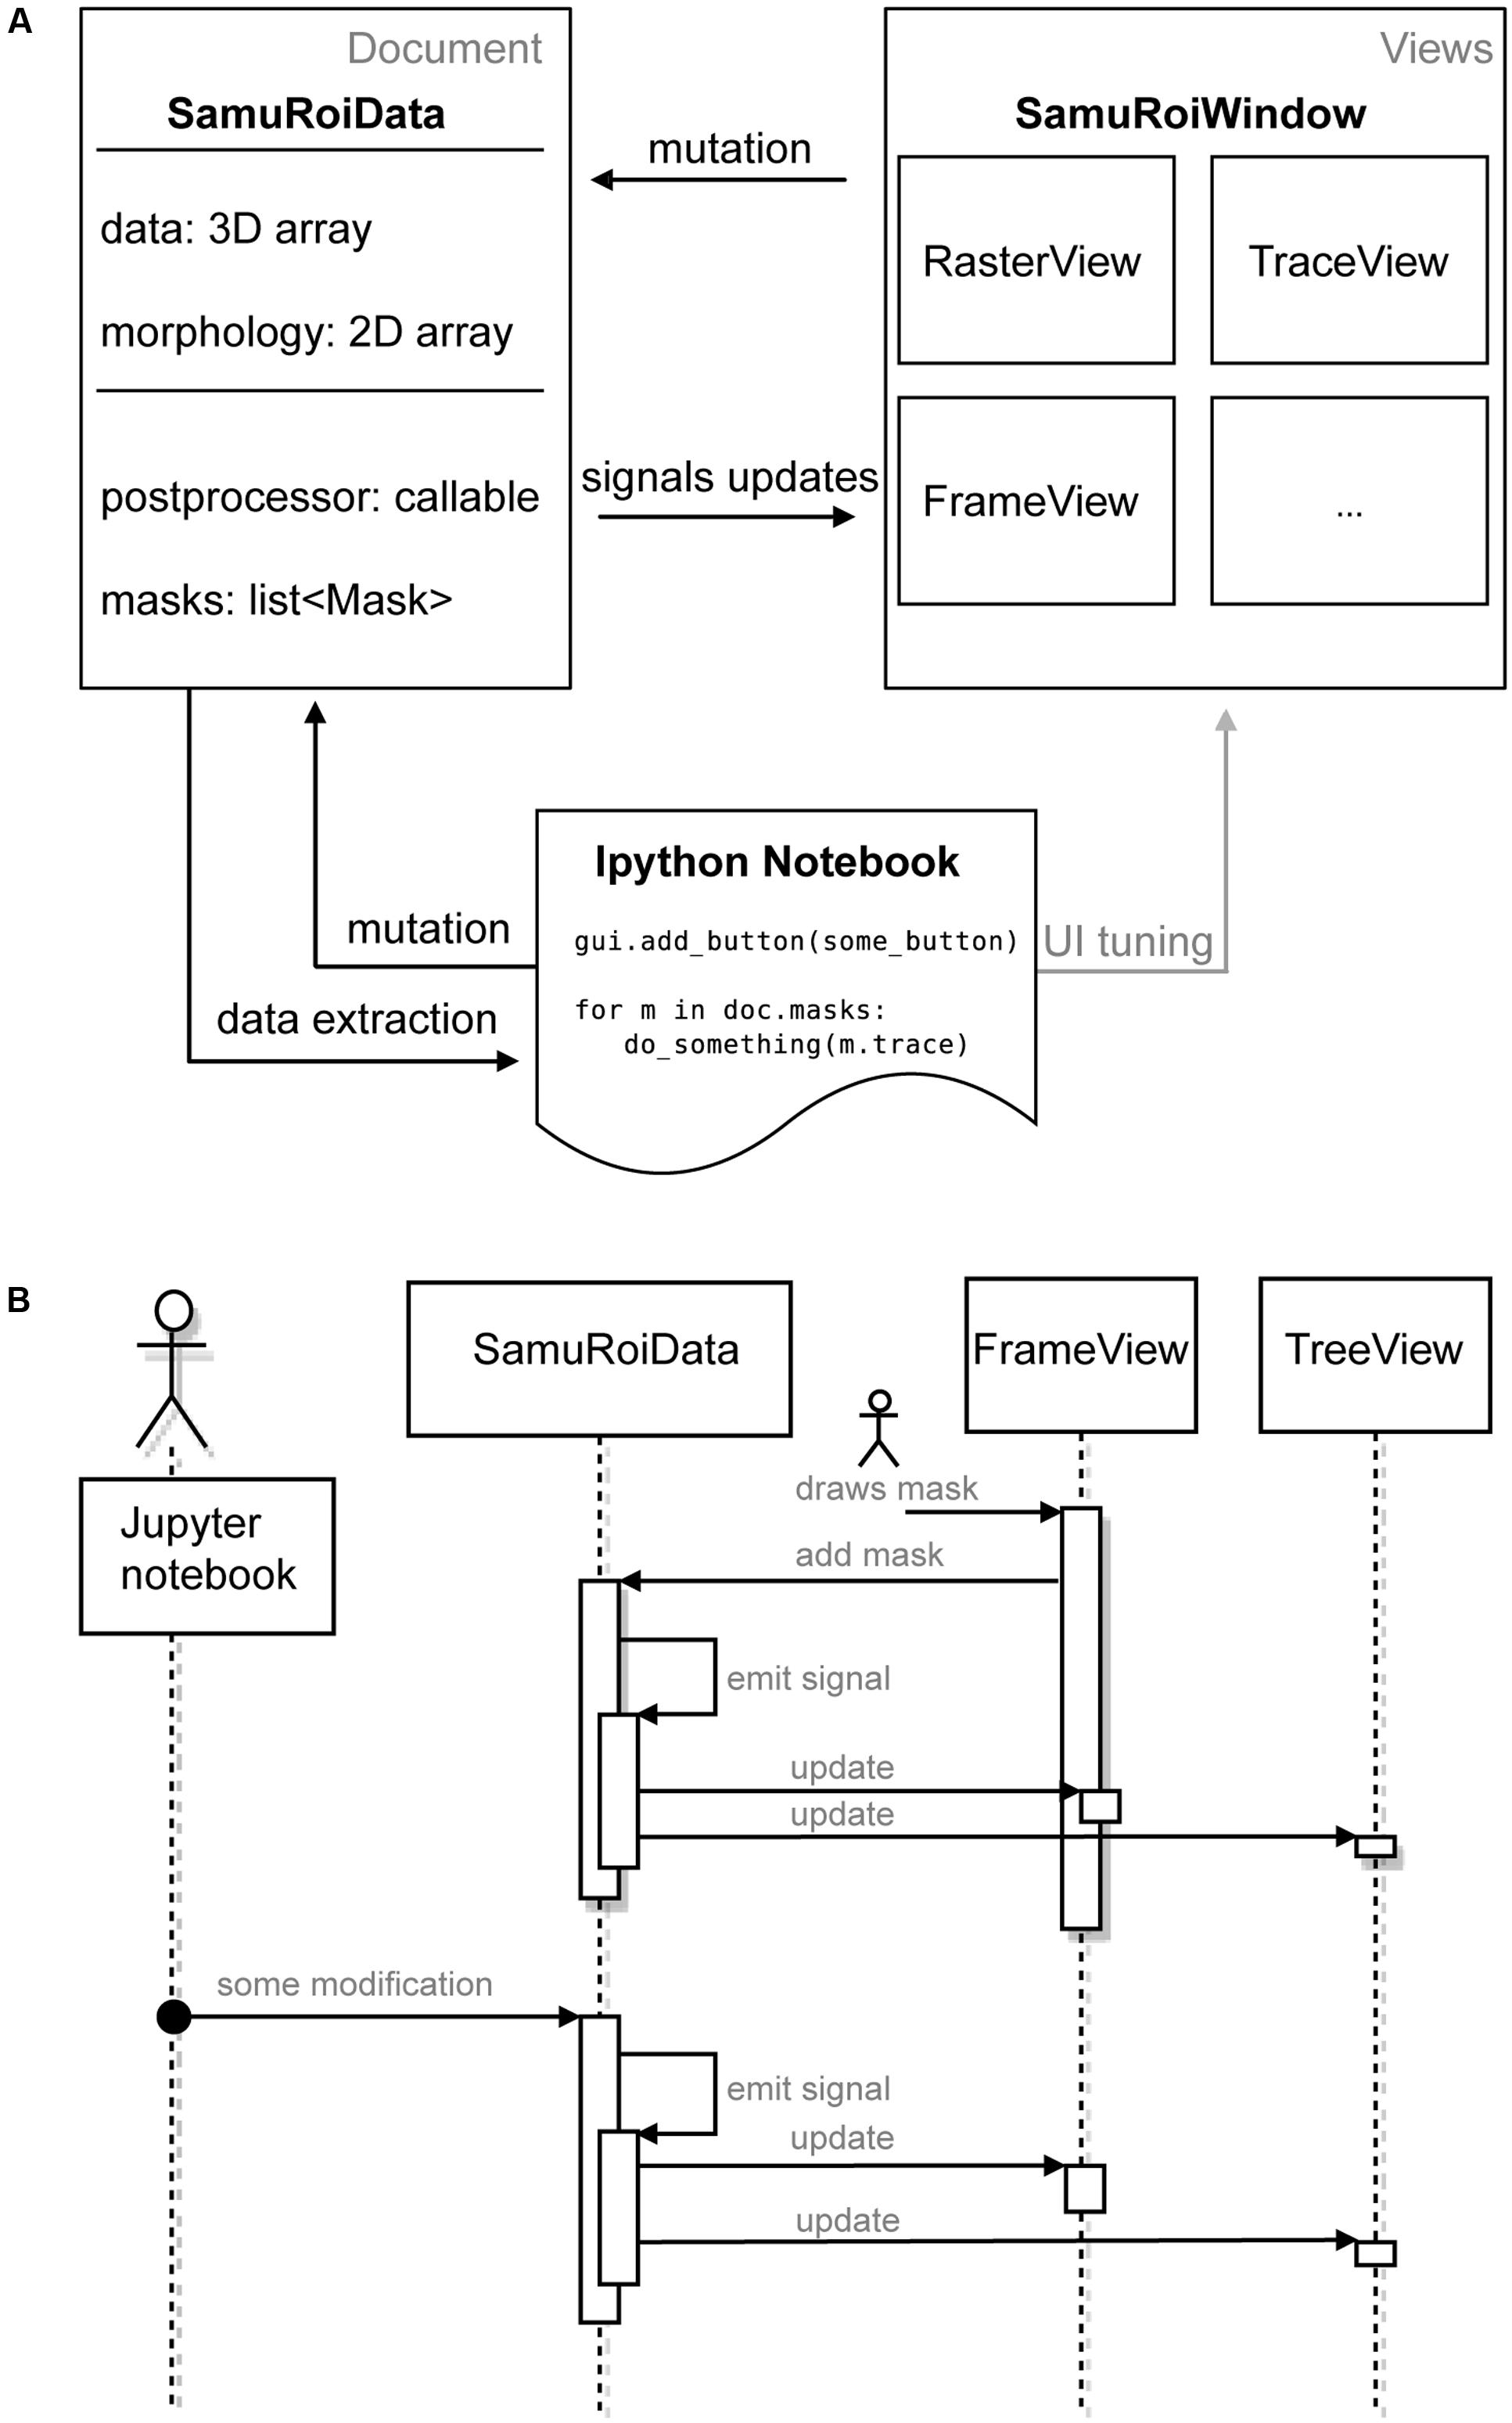 Frontiers | SamuROI, a Python-Based Software Tool for